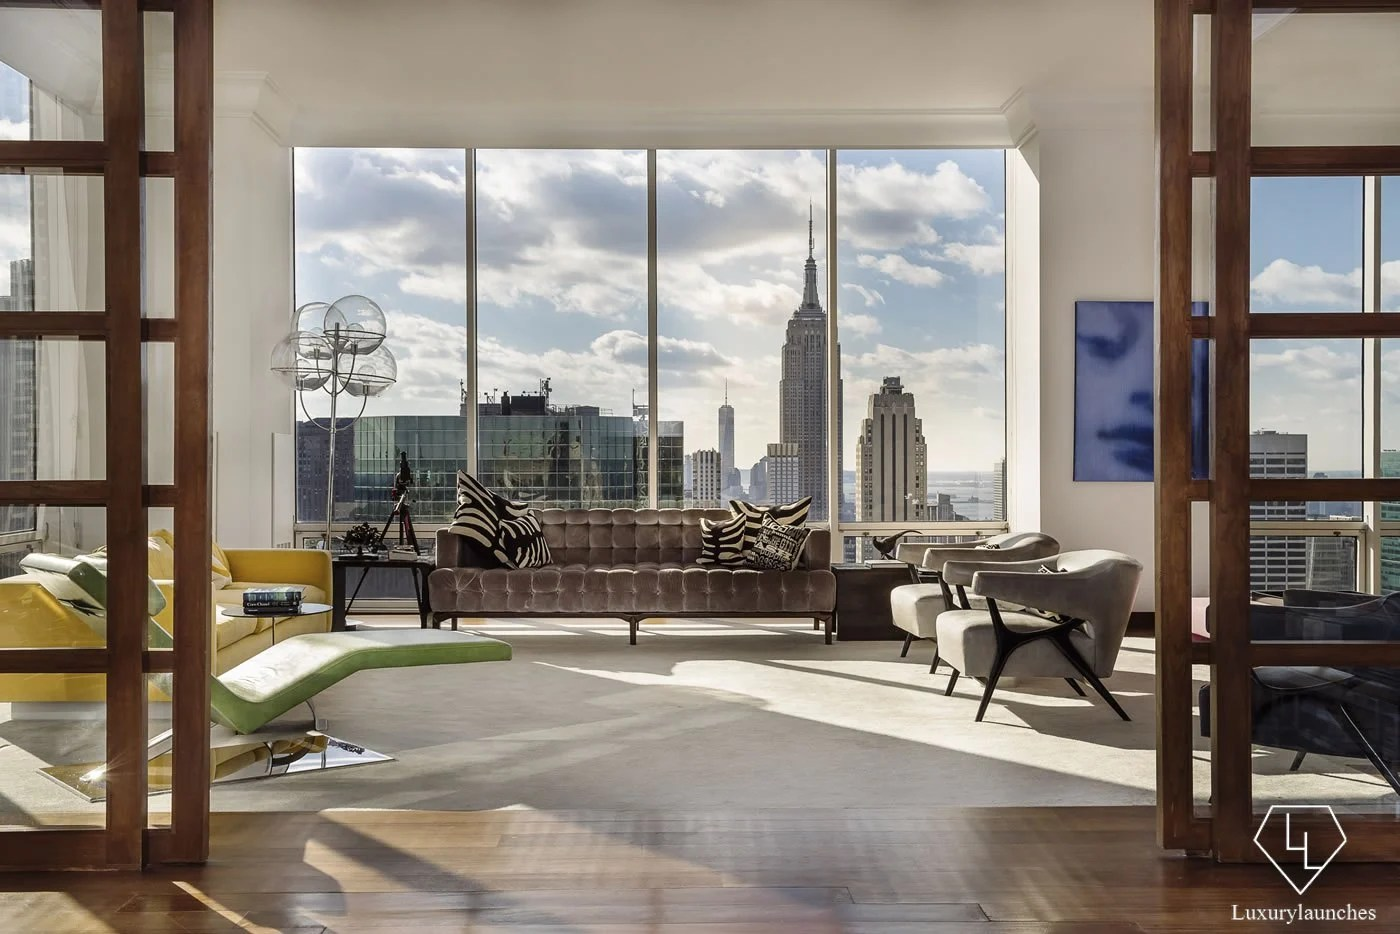 Guccis 38 million penthouse in Manhattan is up for sale here is an inside look